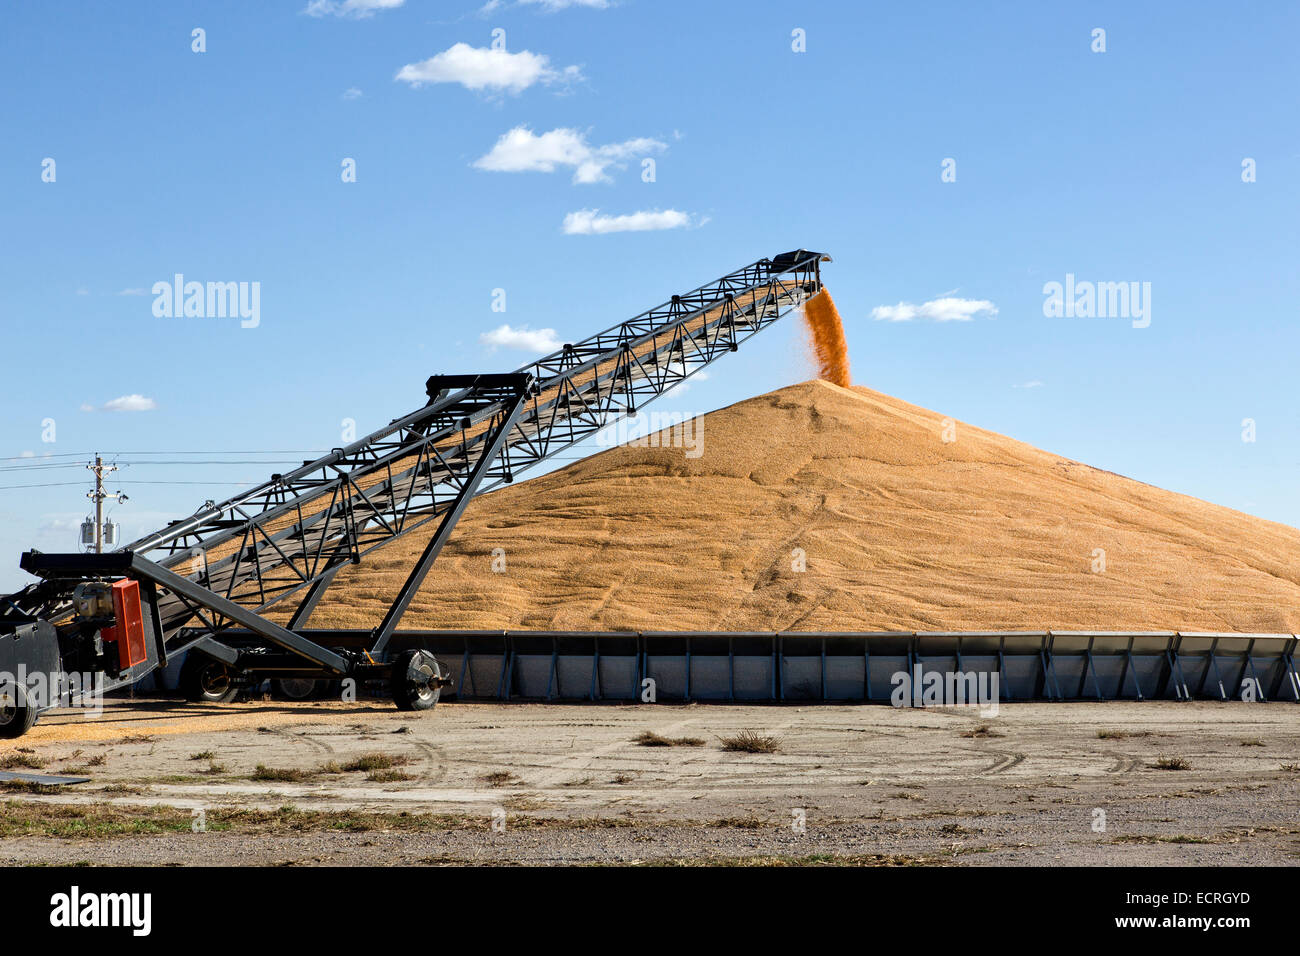 Transport conveyor transporting shelled corn into storage bunker. - Stock Image